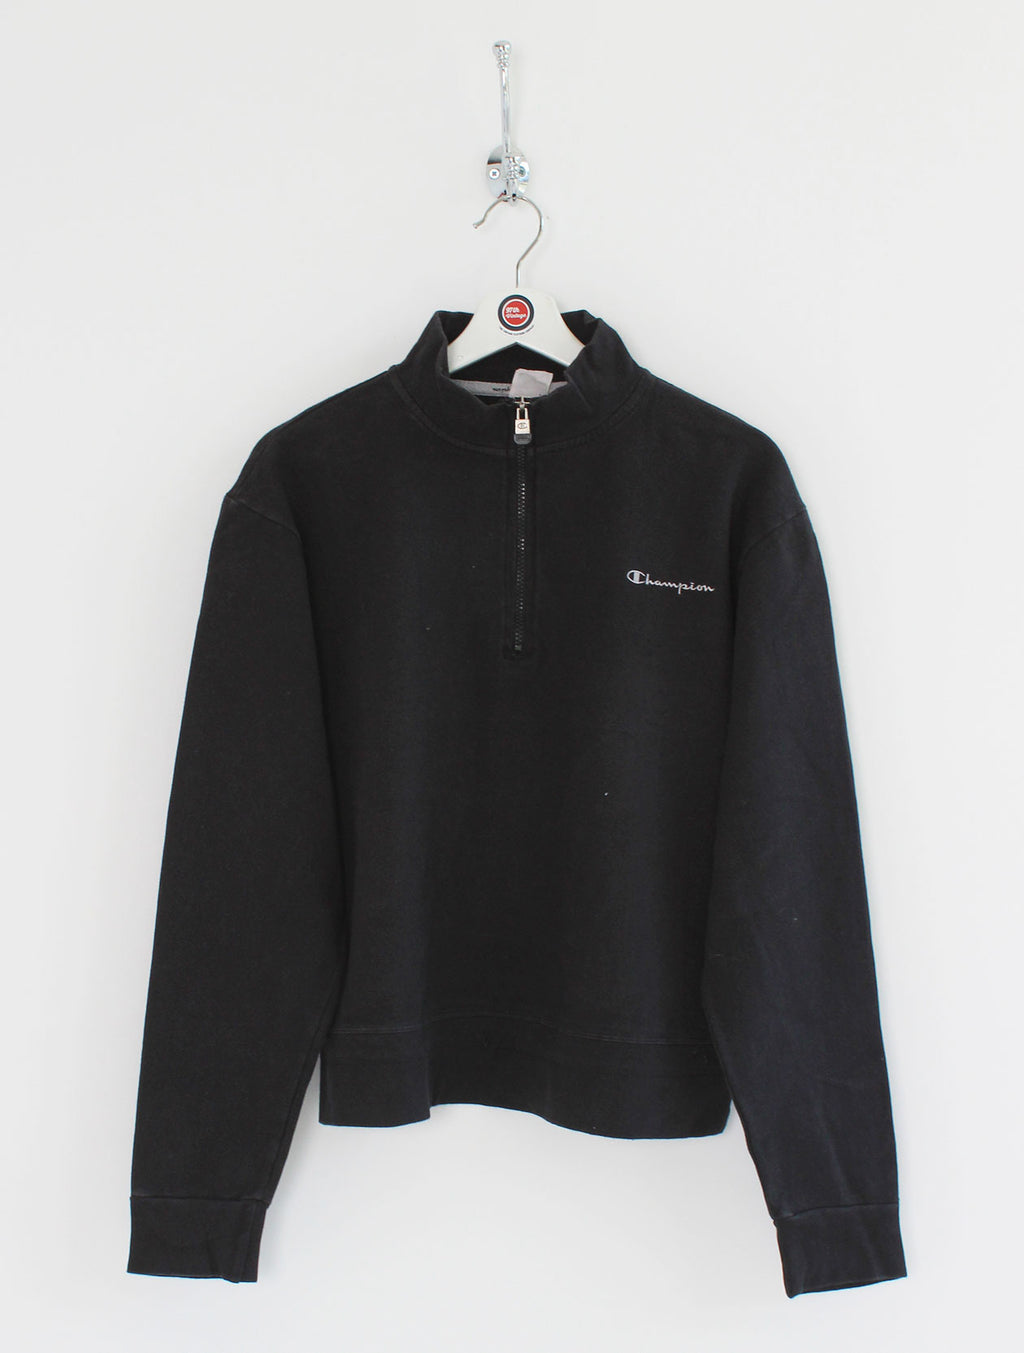 Women's Champion 1/4 Zip Sweatshirt (L)